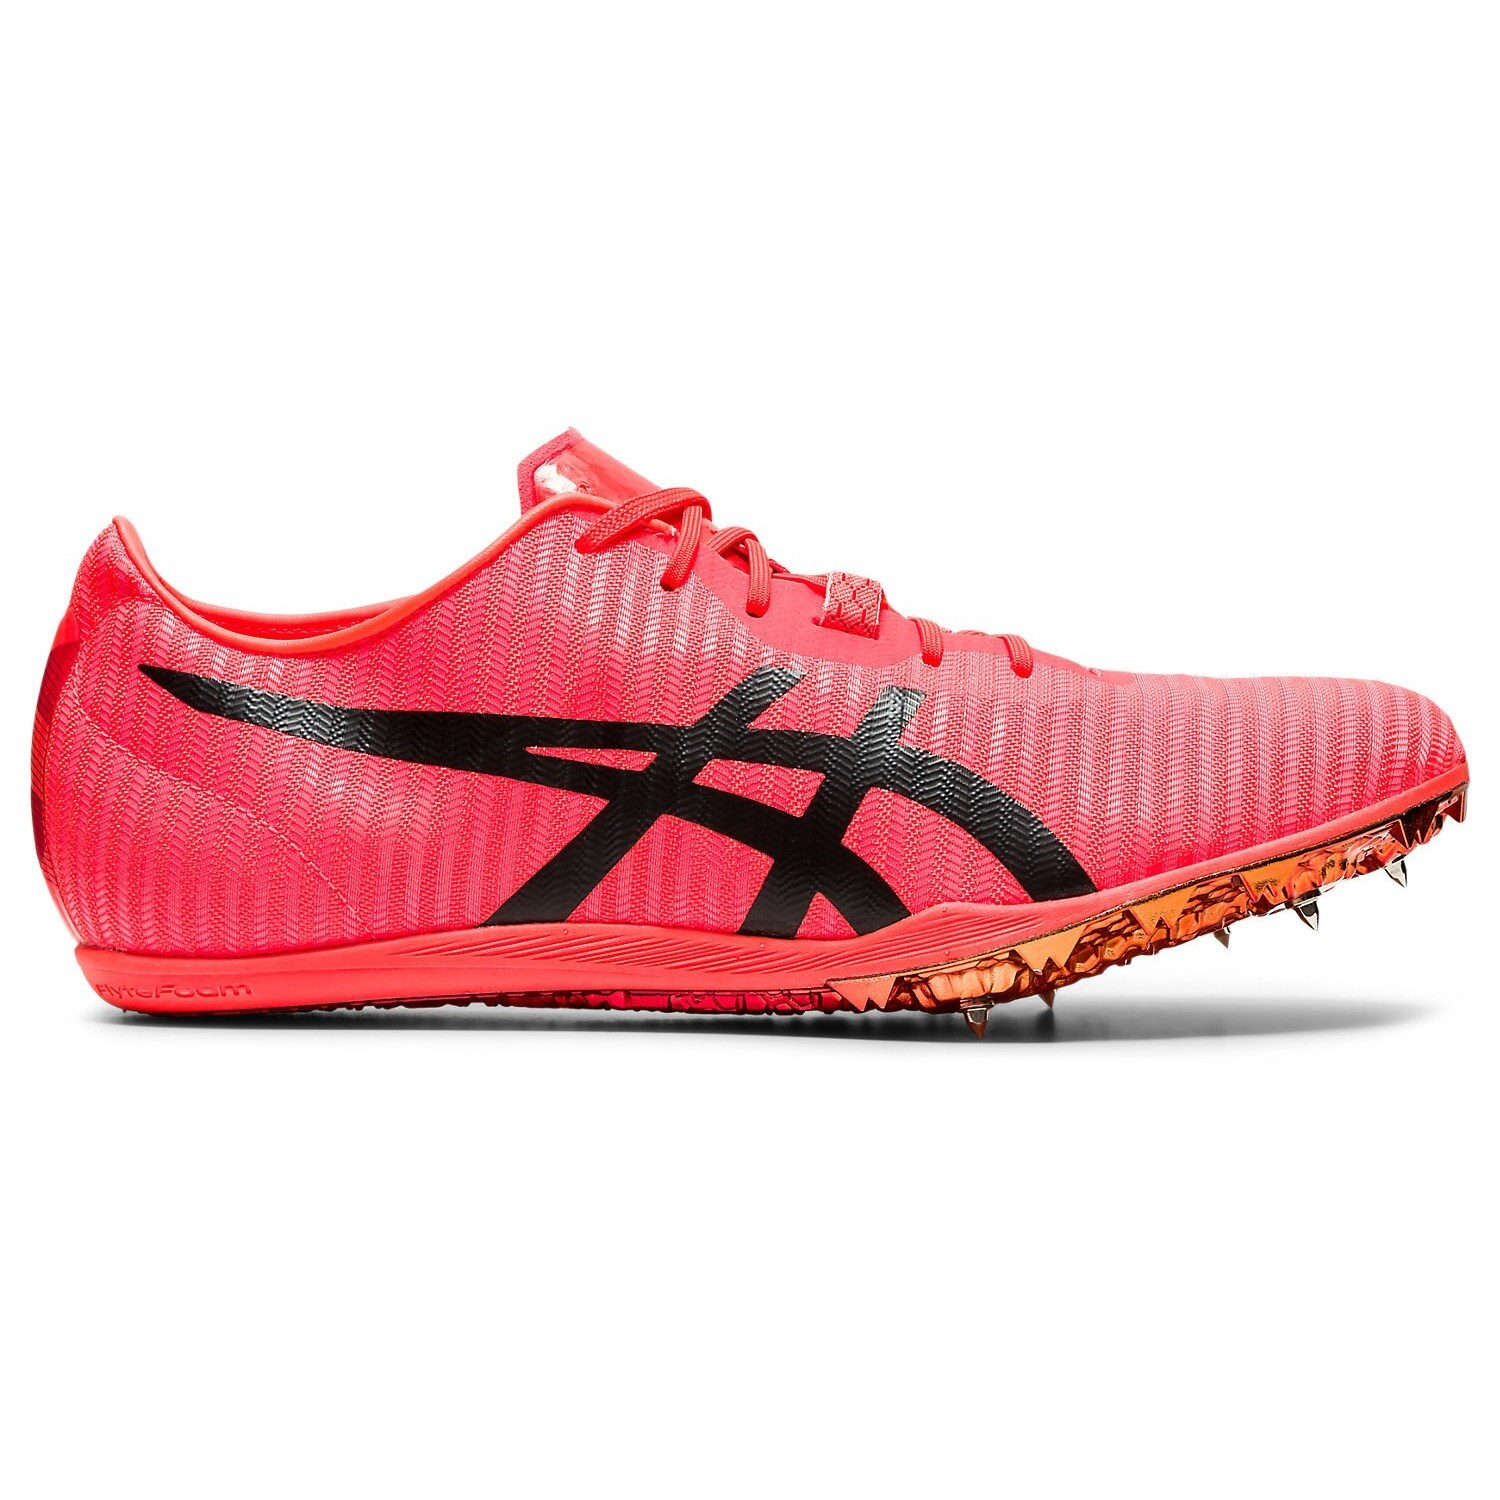 disfraz juego estaño  Asics Cosmoracer MD 2 Tokyo - Unisex Middle Distance Track Spikes - Sunrise  Red/Eclipse Black | Sportitude